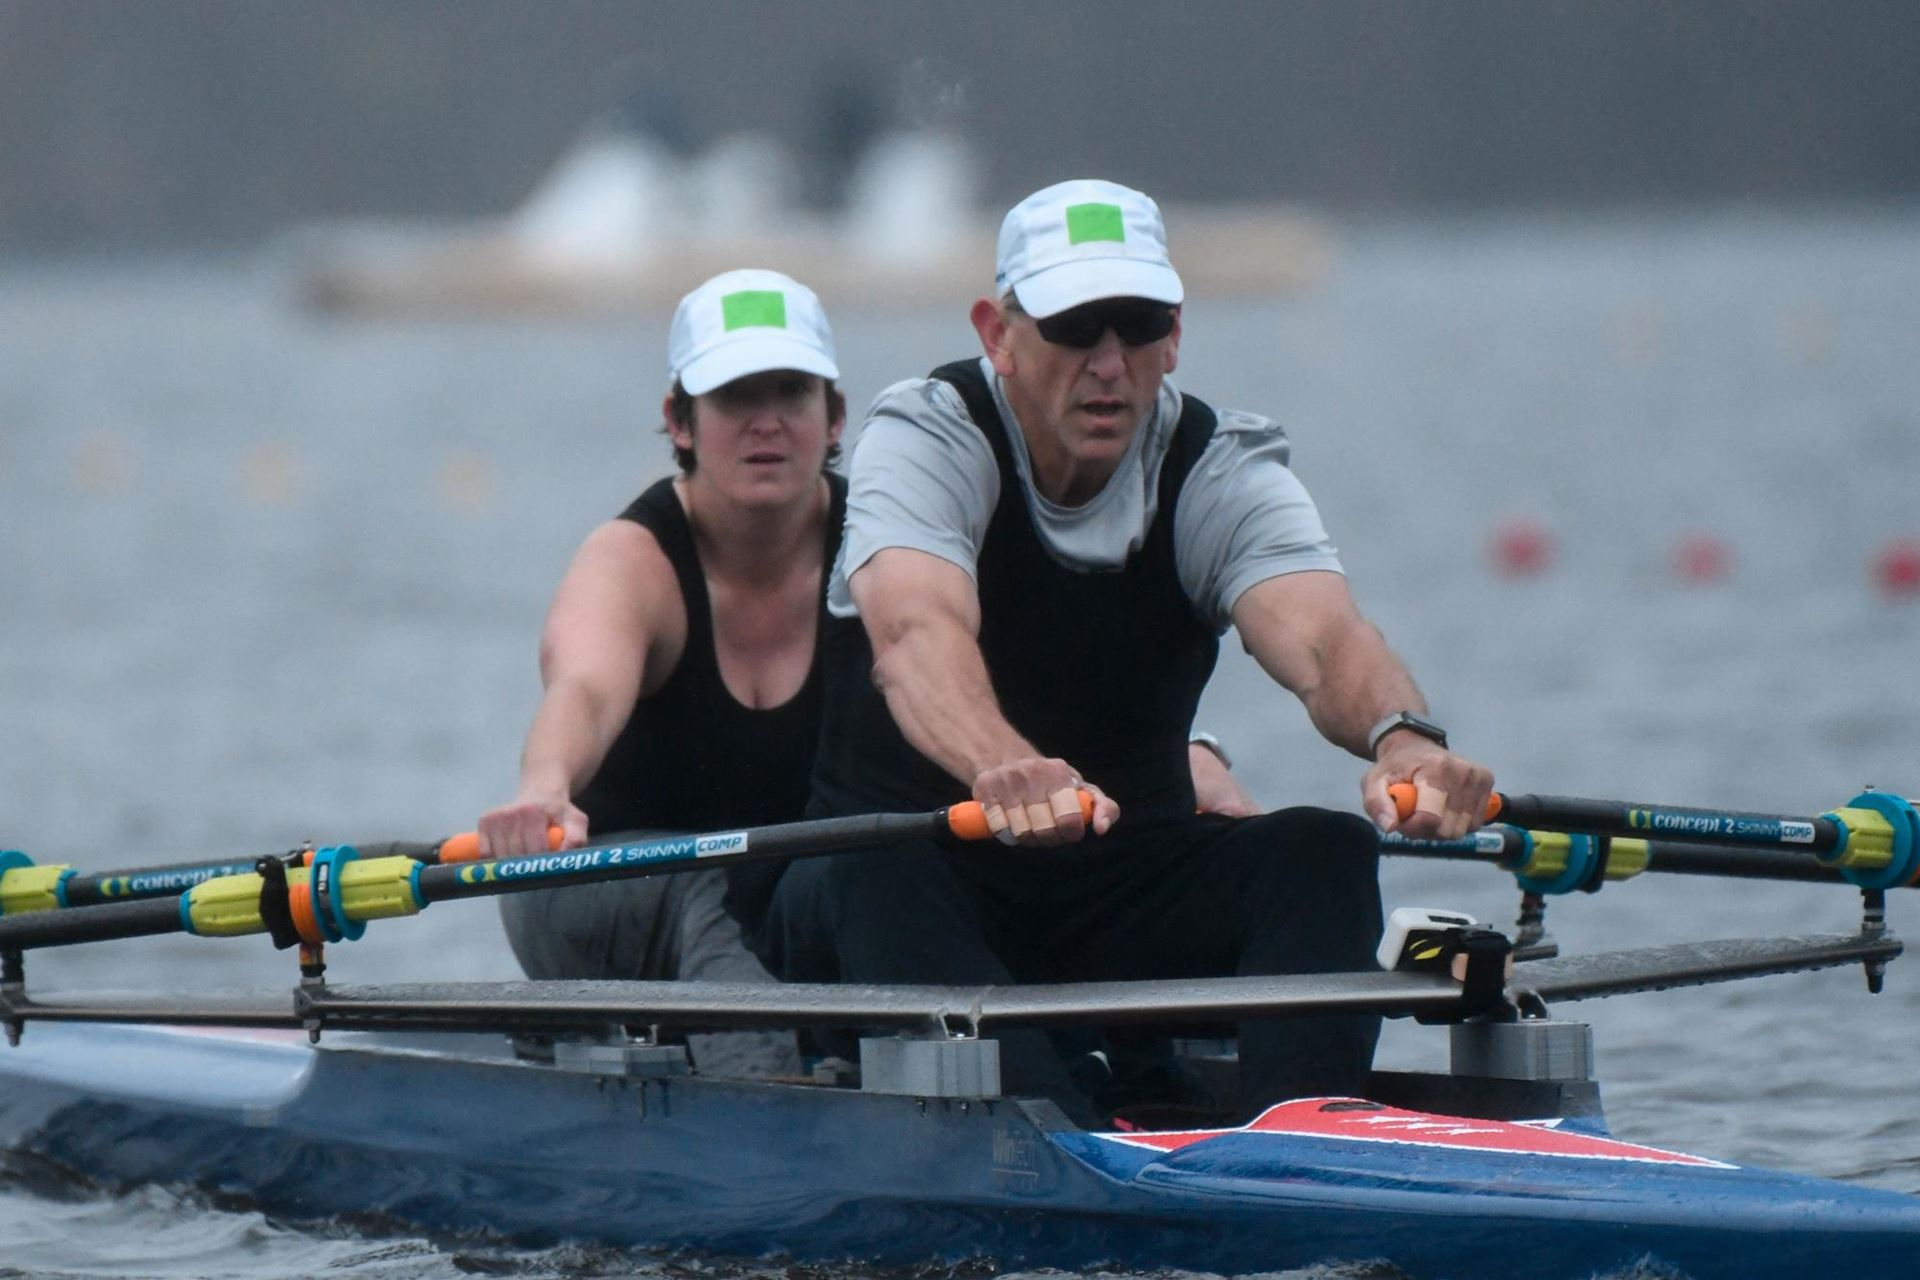 Russell Gernaat and Laura Goodkind rowing. US Rowing image.